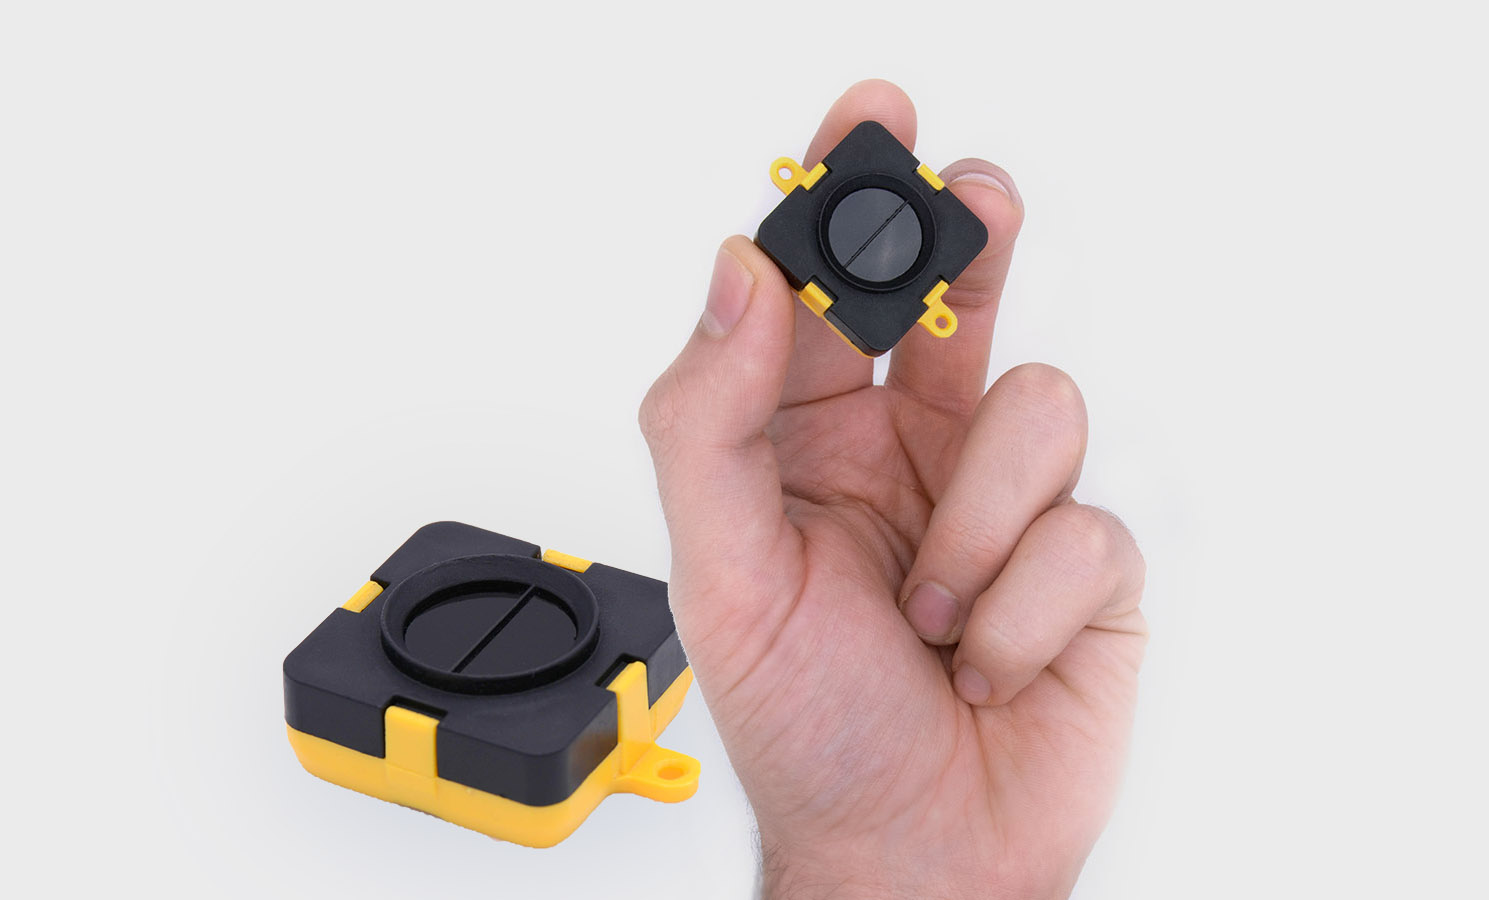 Terabee Sensors Modules Small, Versatile and Low-Cost Distance Sensors